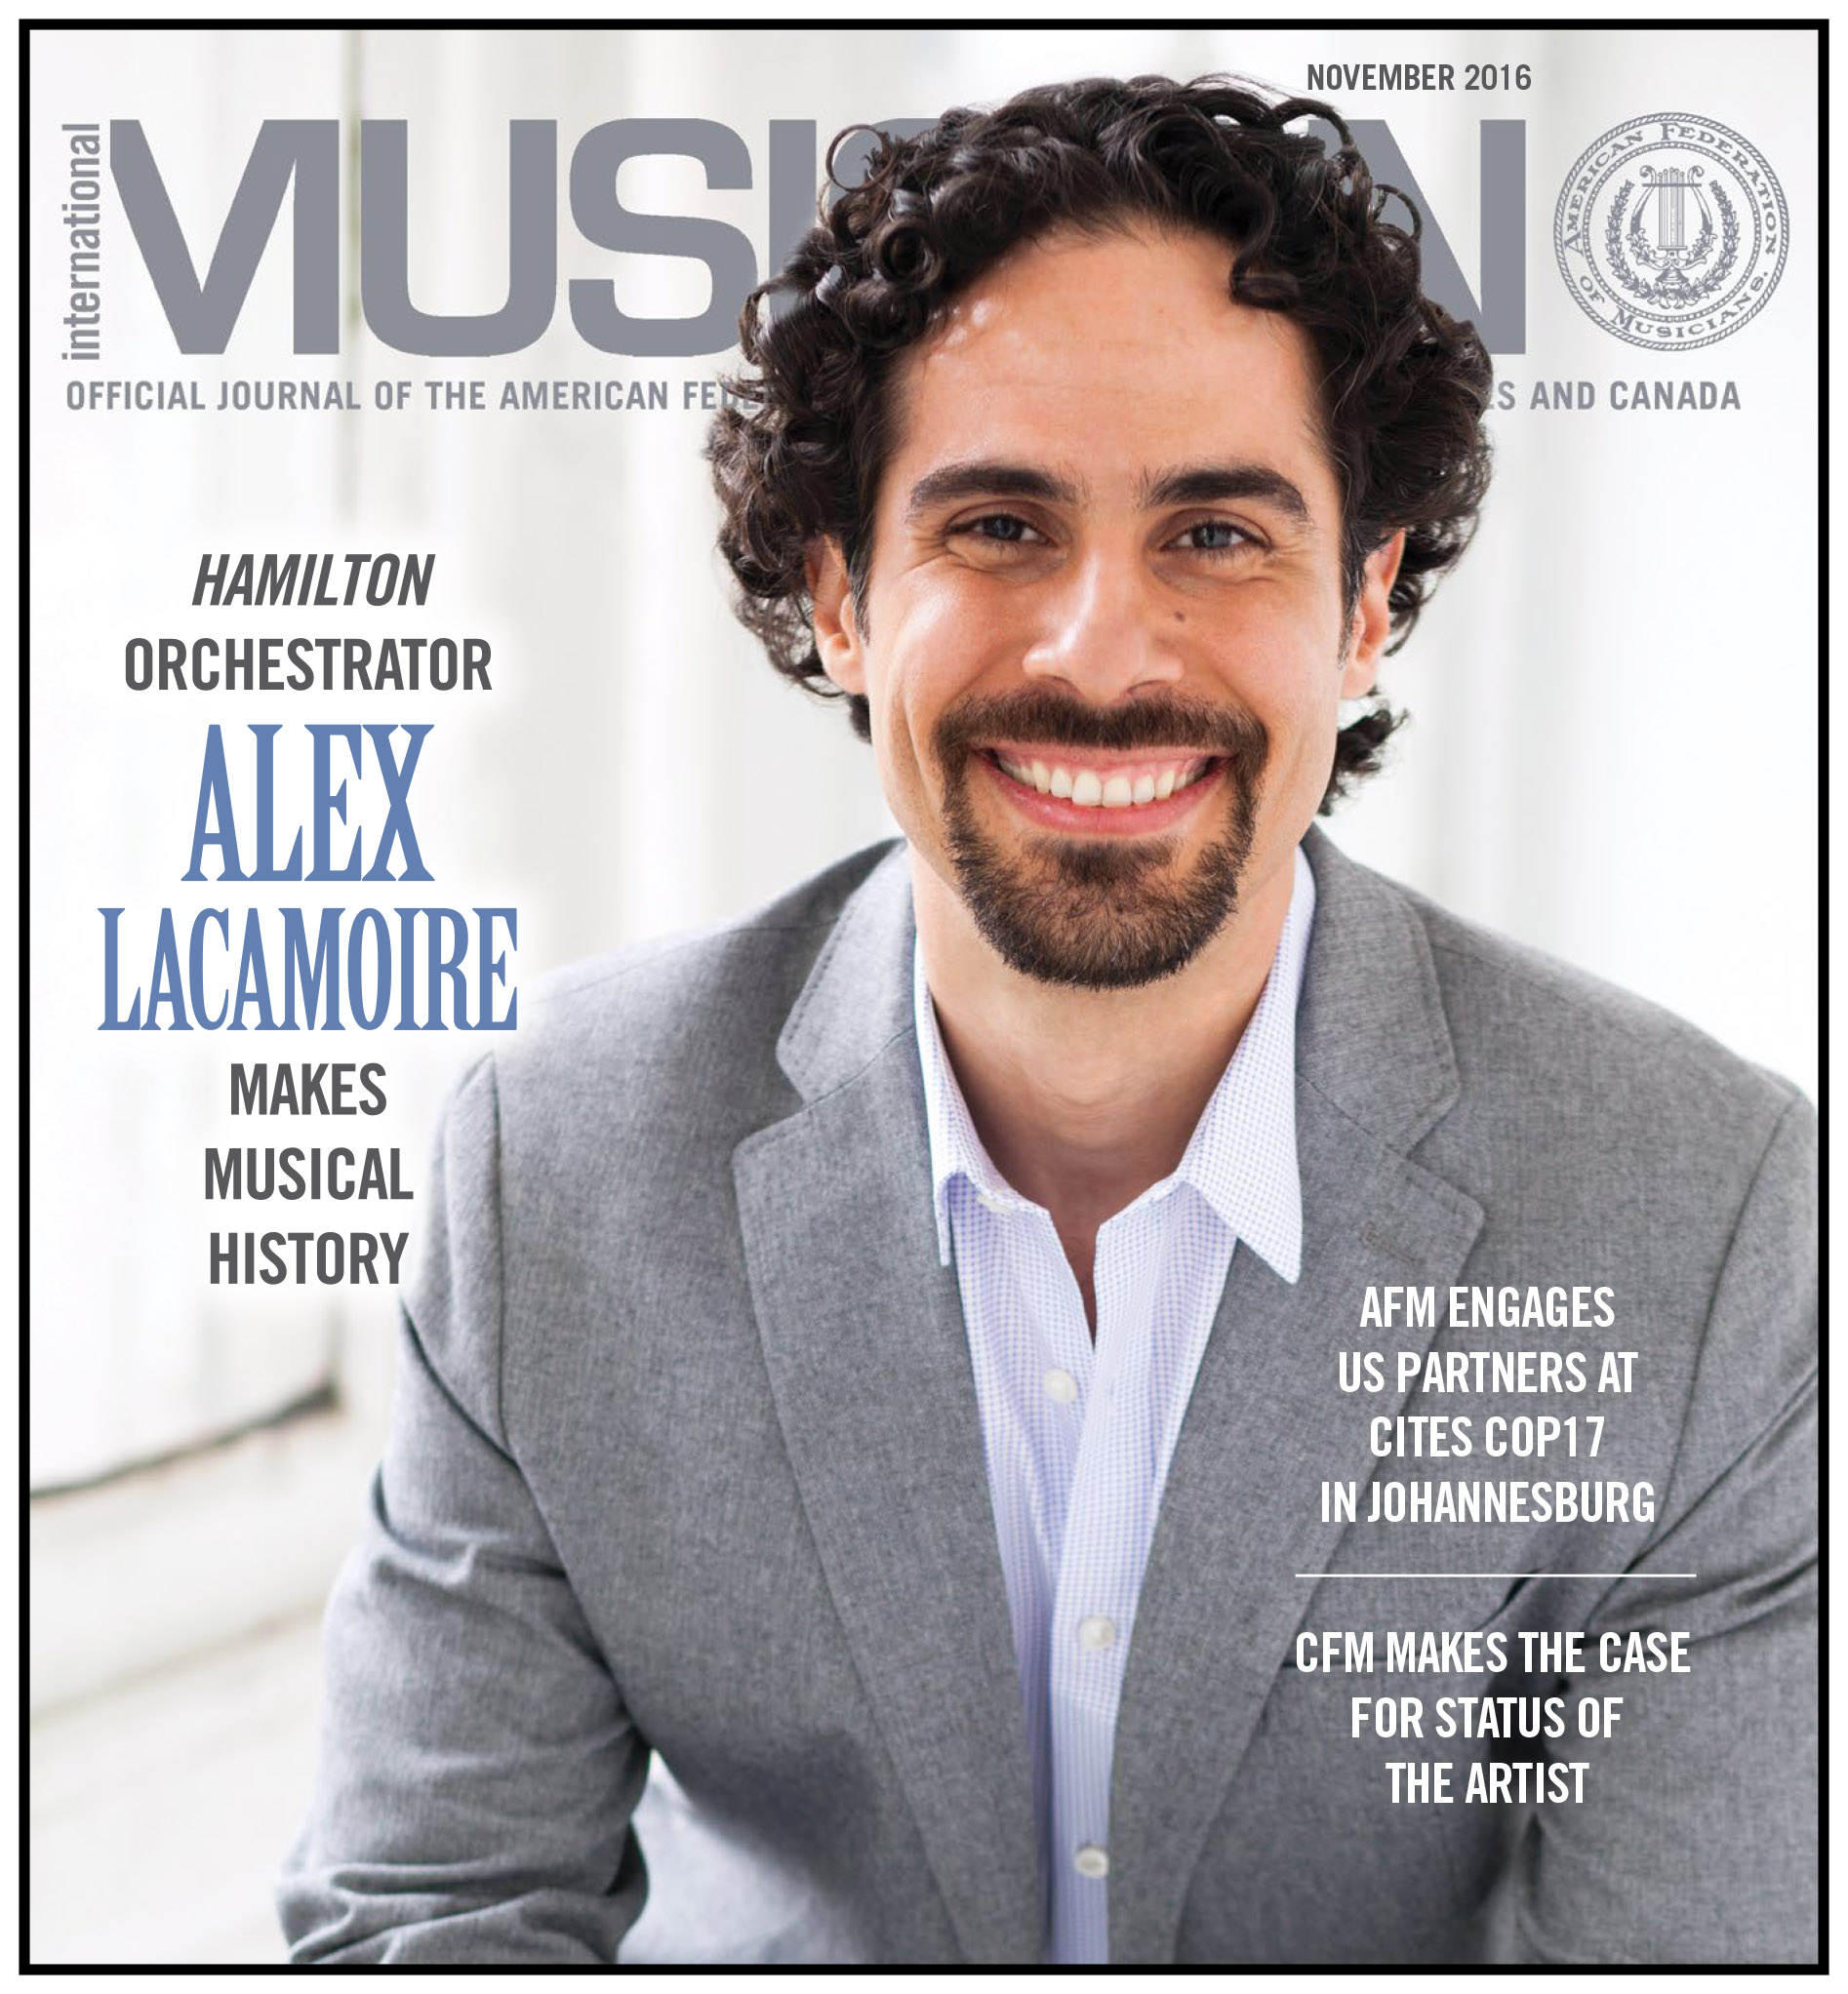 V114-11 - November 2016 - International Musician Magazine